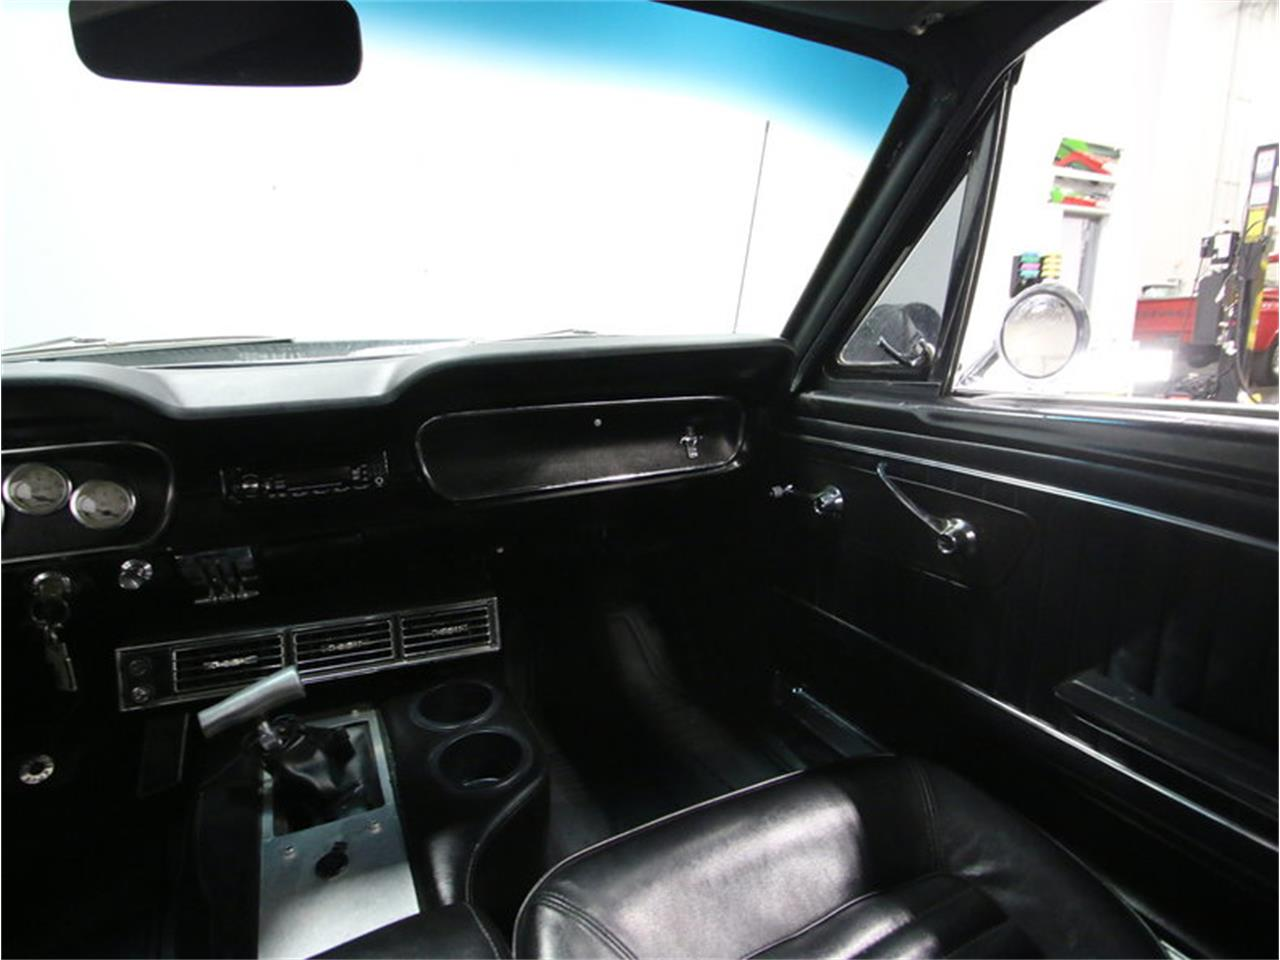 Large Picture of Classic '65 Ford Mustang located in Tennessee - $24,995.00 Offered by Streetside Classics - Nashville - M5MV